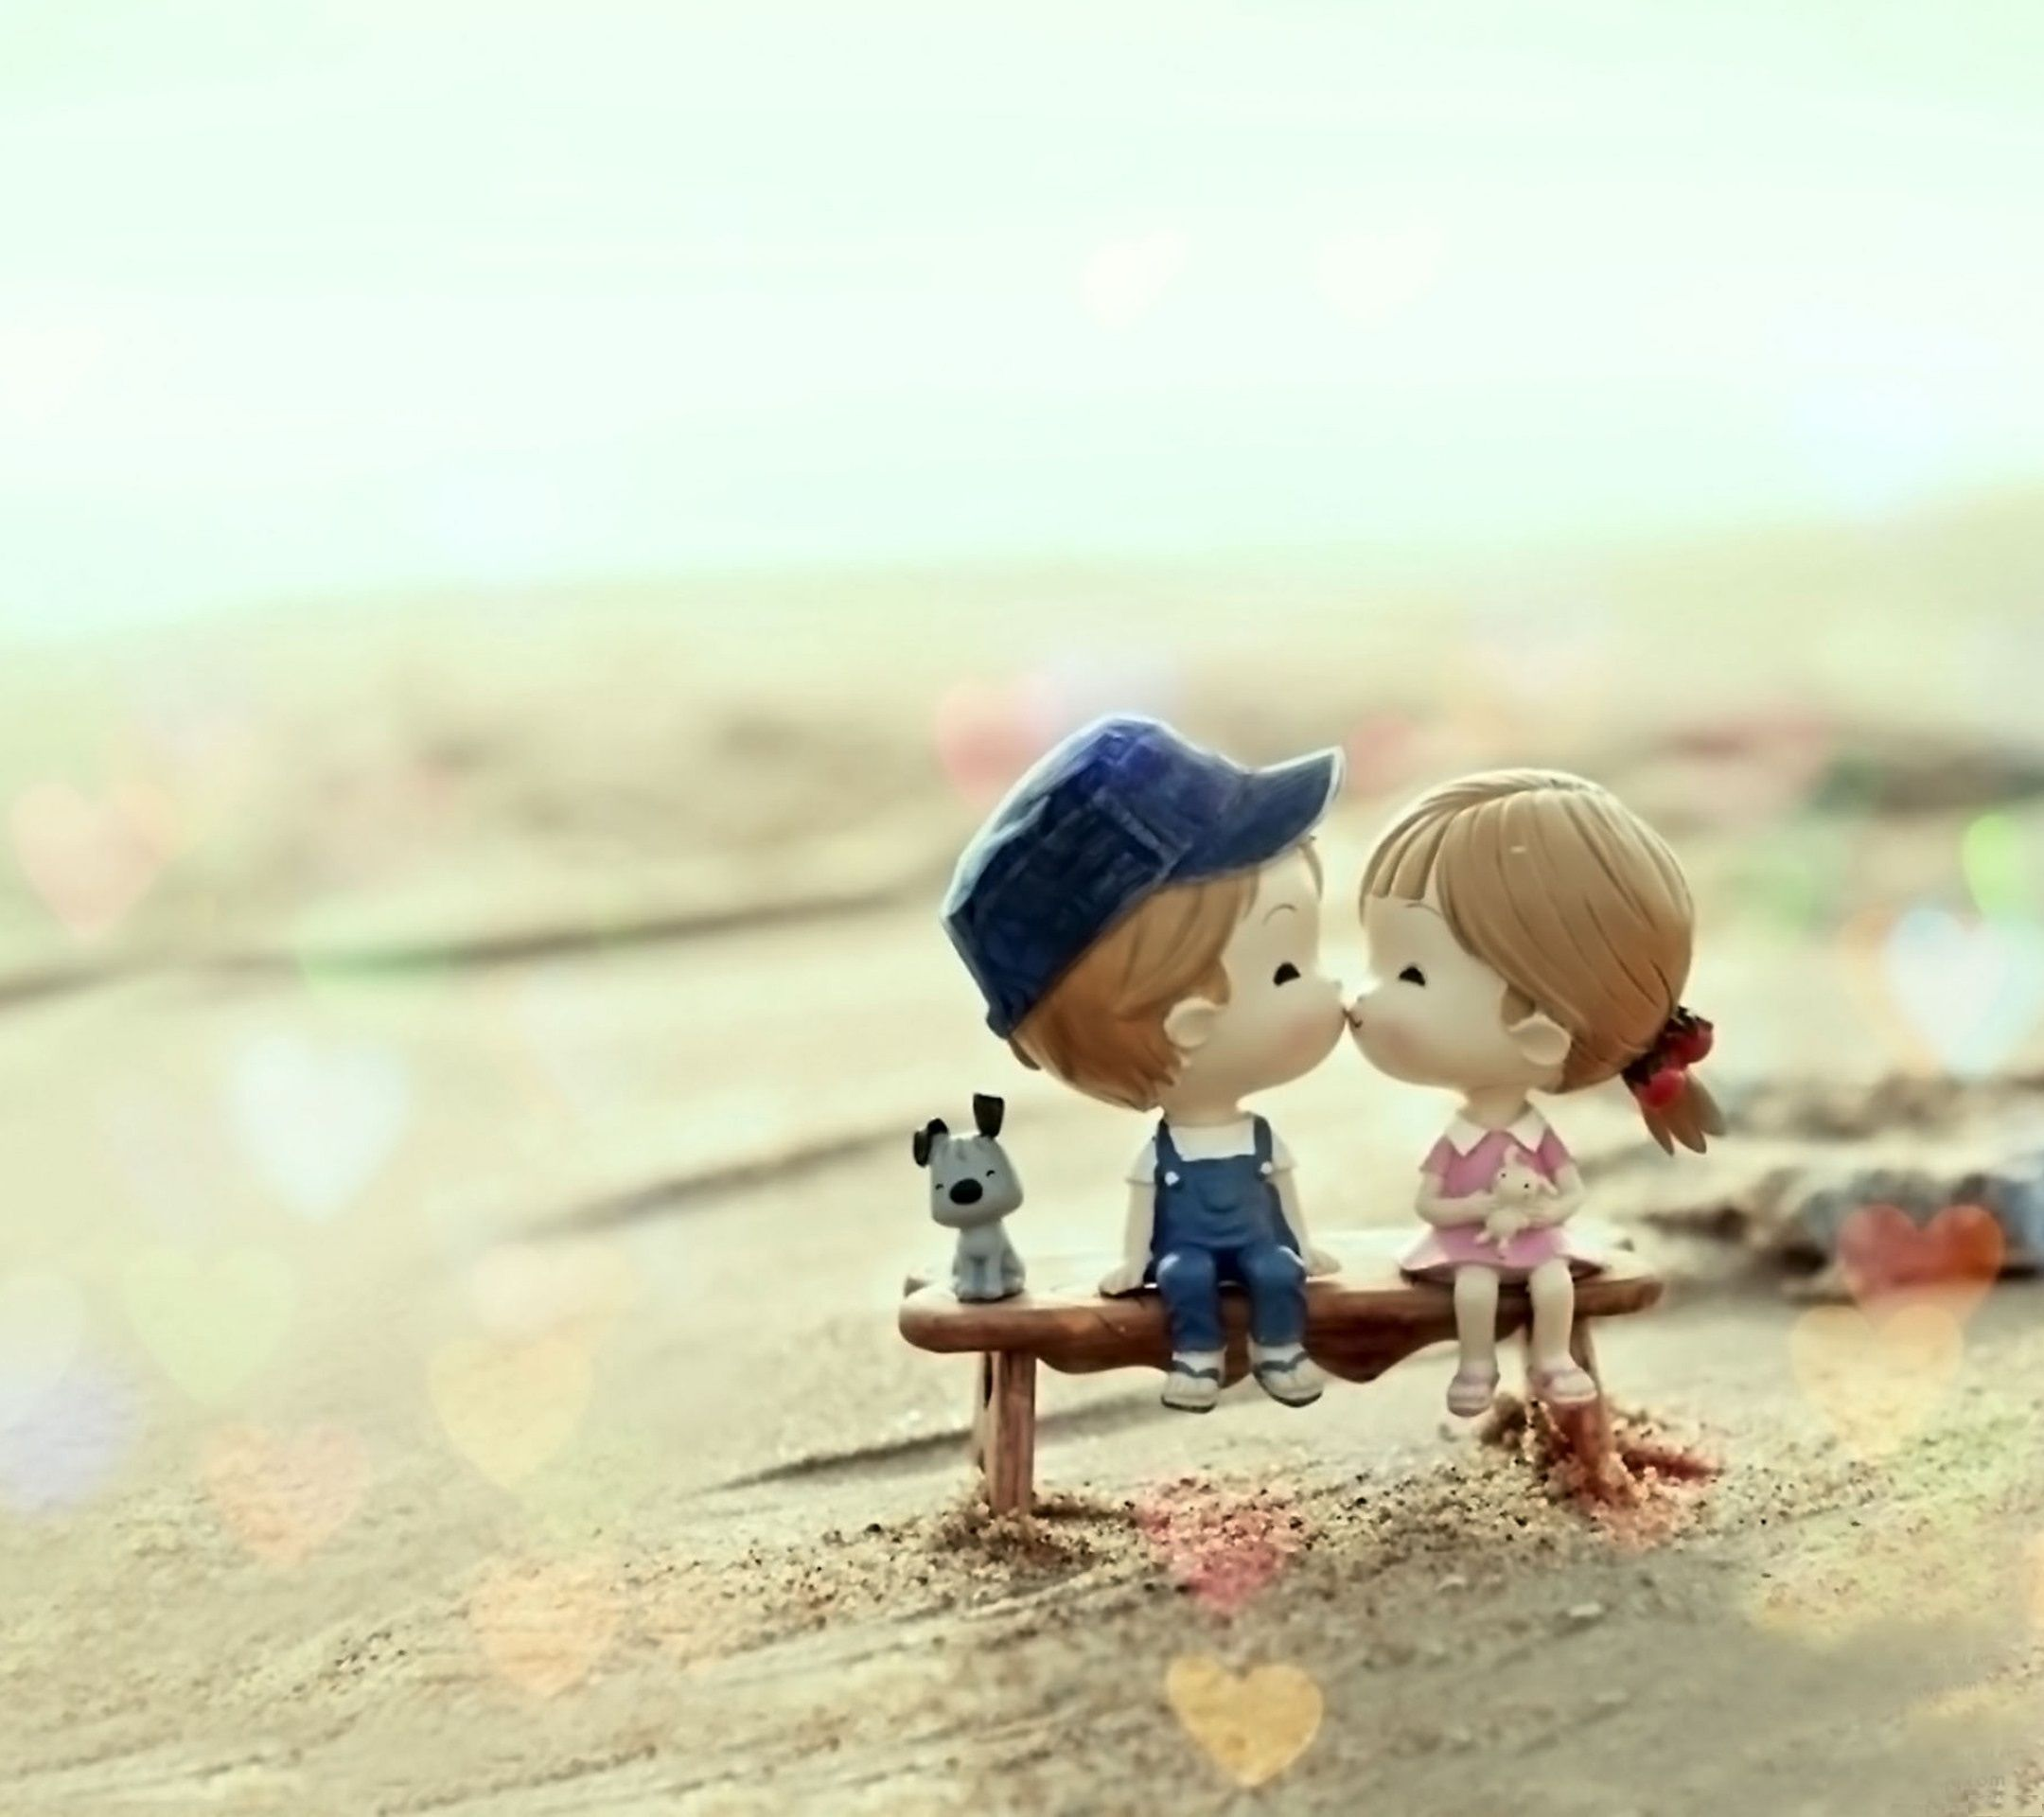 Doll Couple Kissing Tap To See More Love Is In The Air Wallpapers Mobile9 Cute Love Wallpapers Cute Couple Wallpaper Love Couple Wallpaper